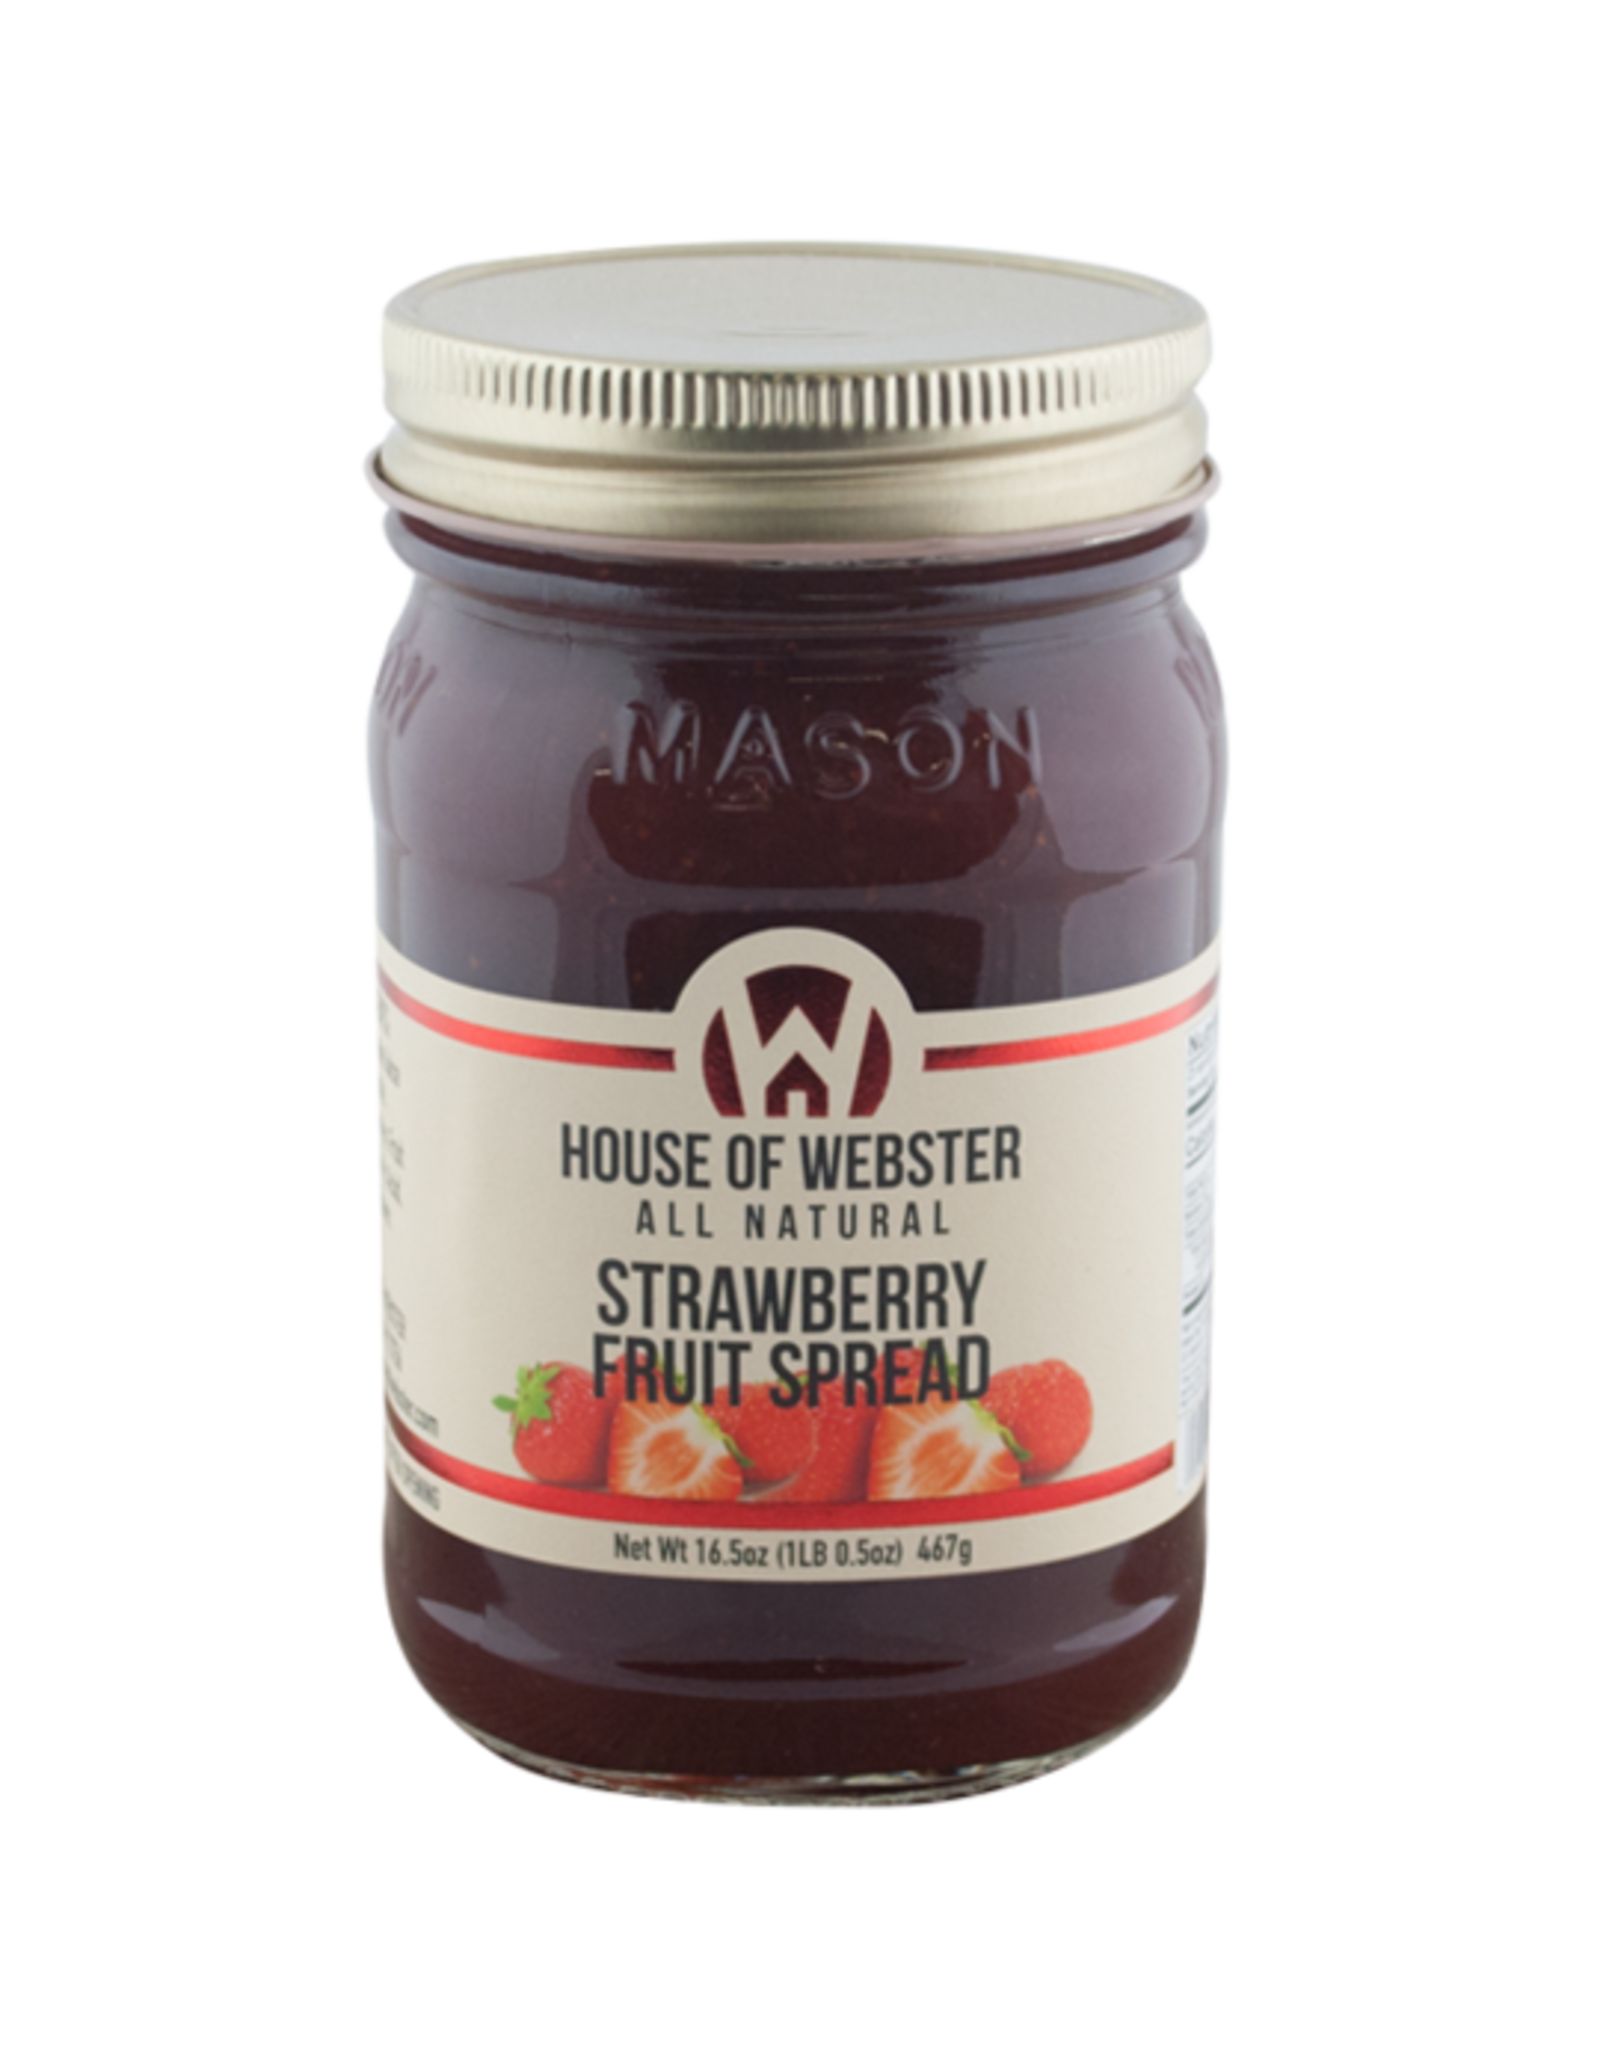 House of Webster Strawberry Fruit Spread, 16.5 oz.